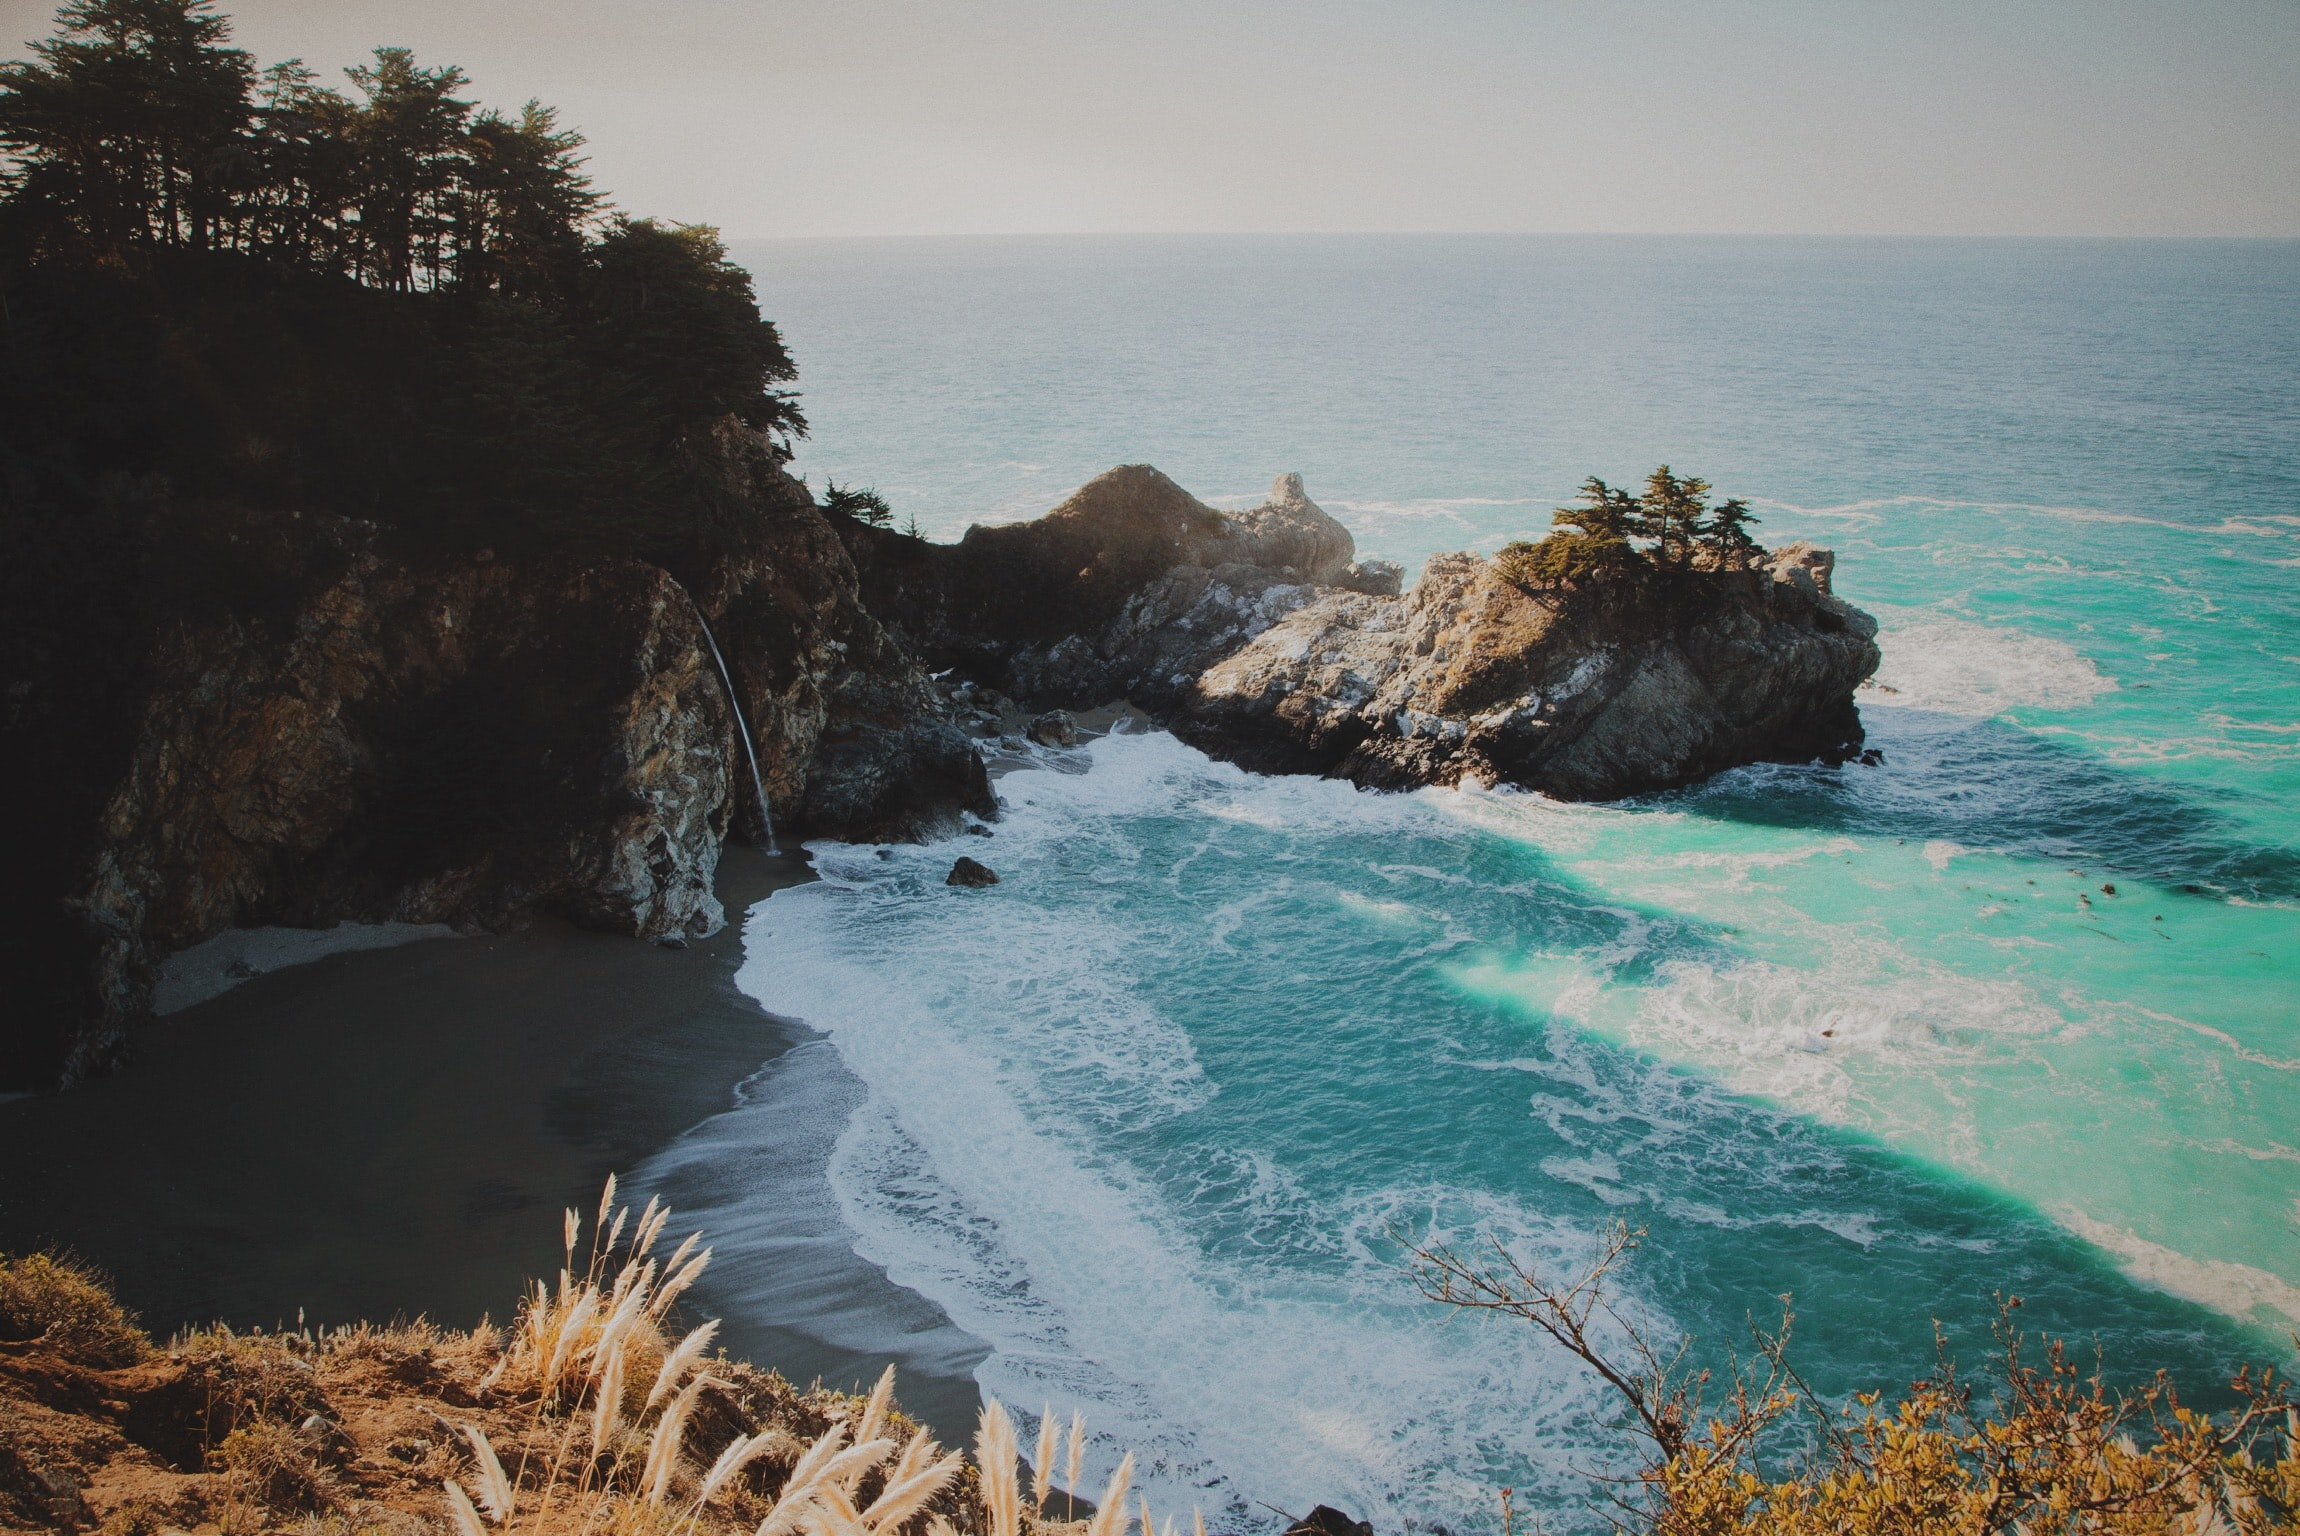 View of an ocean bay from a cliff at McWay Falls